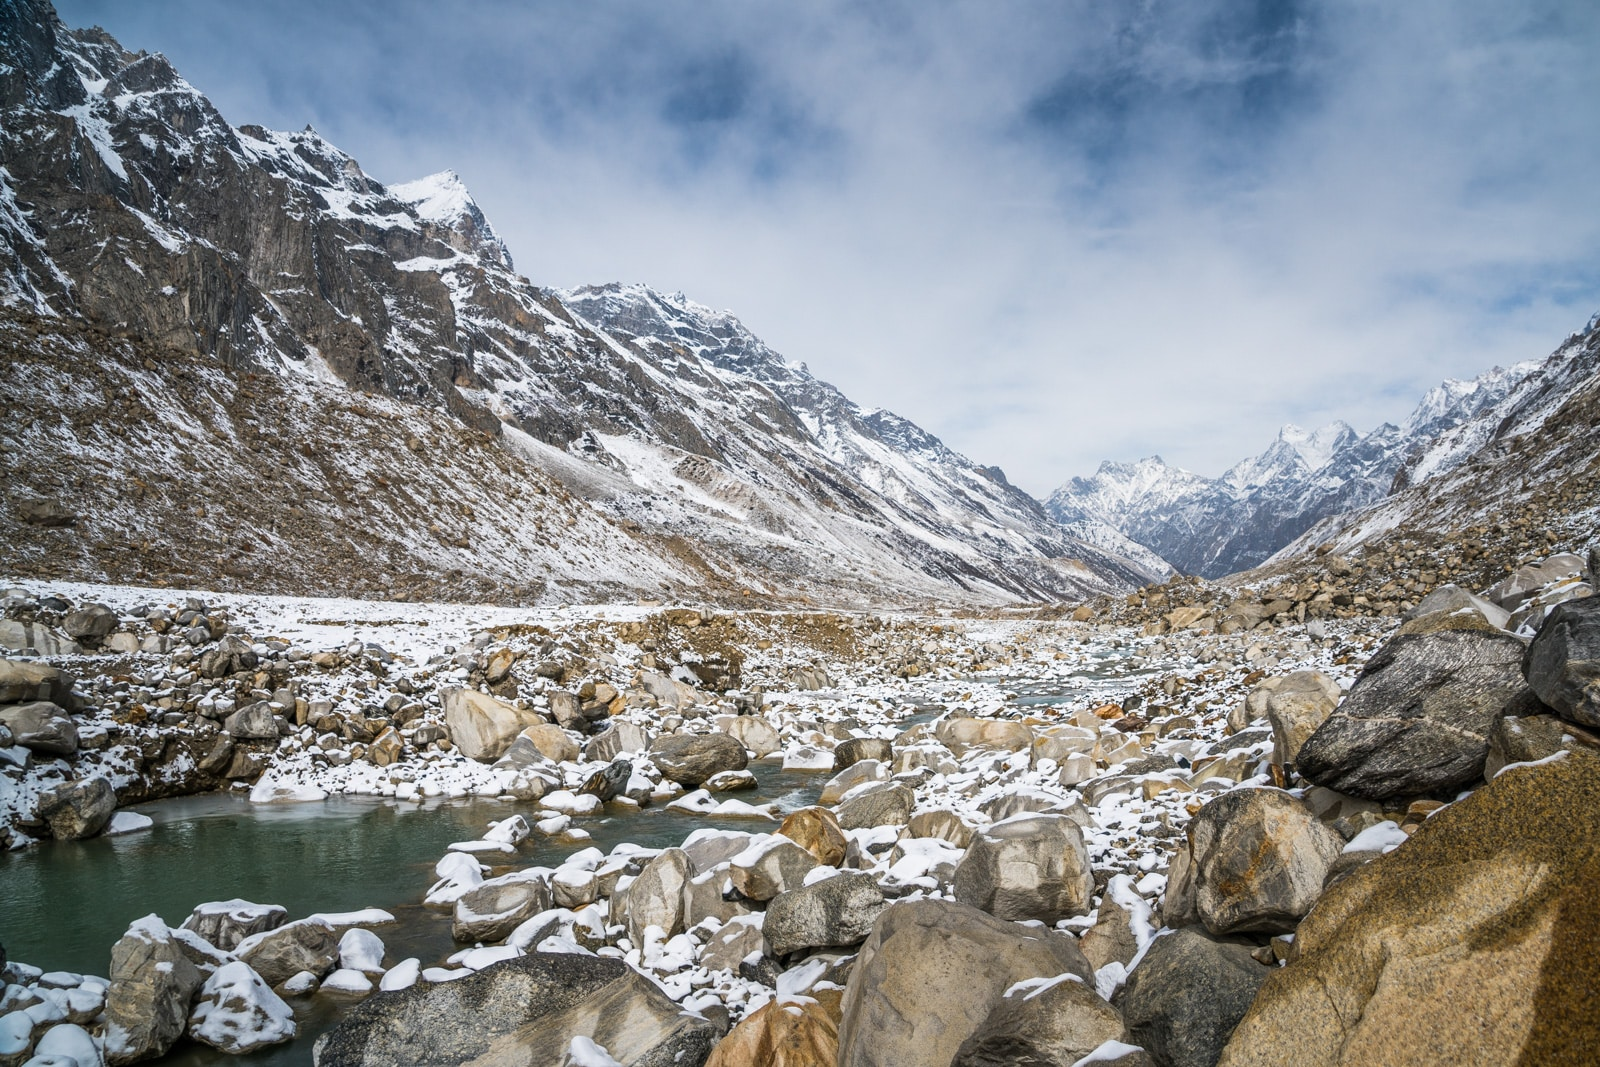 Guide to trekking to the start of the Ganges River in Uttarakhand, India - Trekking path along river to Gangotri - Lost With Purpose travel blog